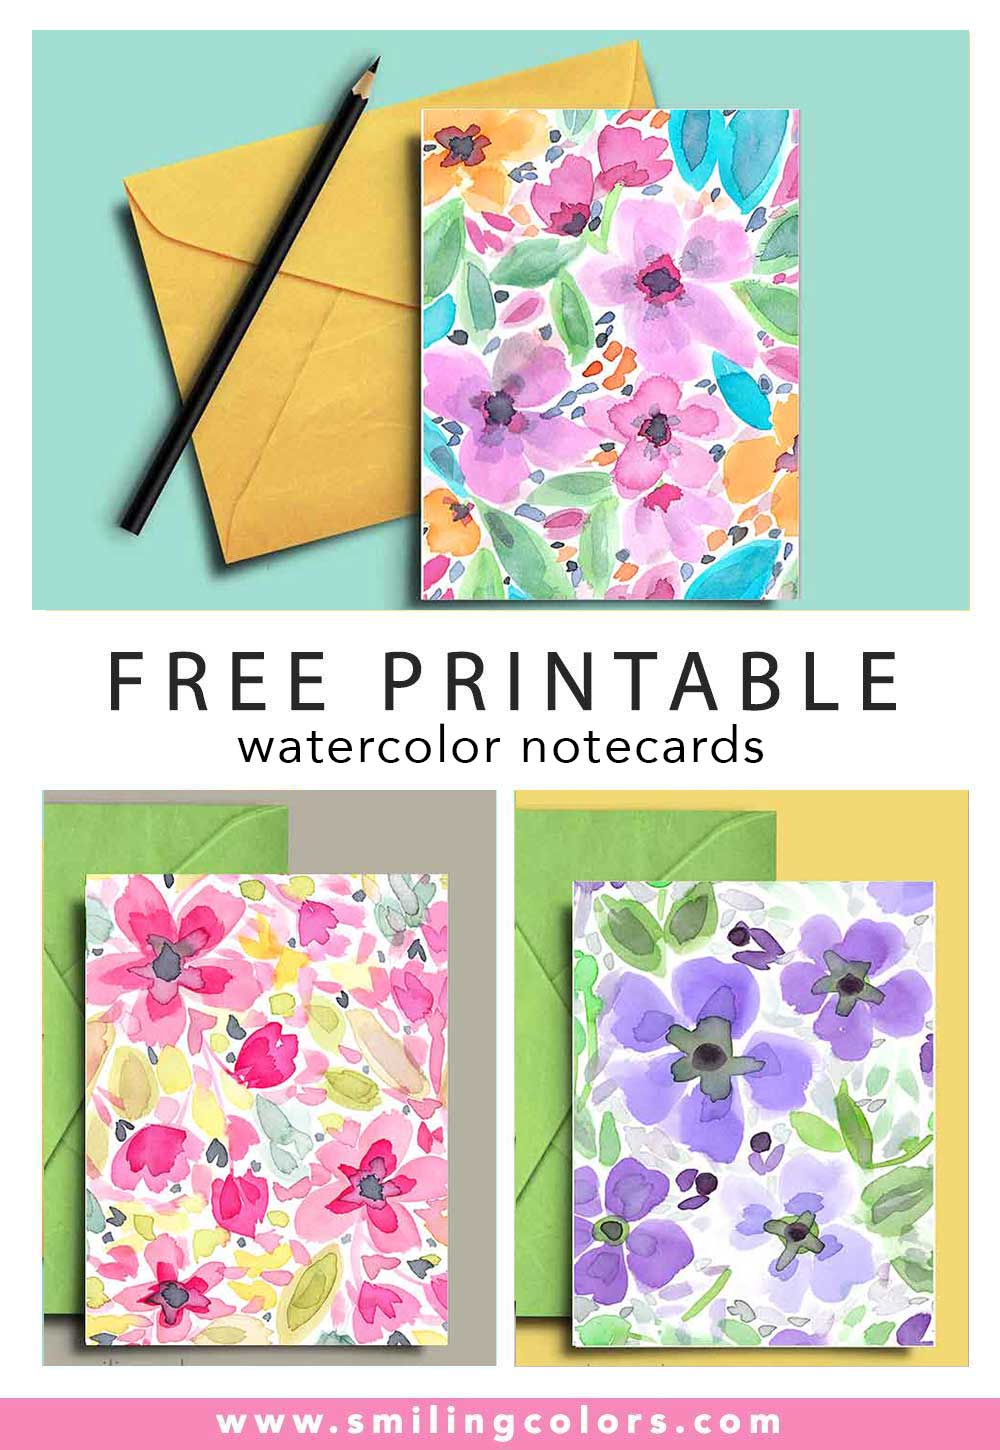 photo relating to Free Printable Miss You Cards named Cost-free Printable watercolor notecards that your self can obtain